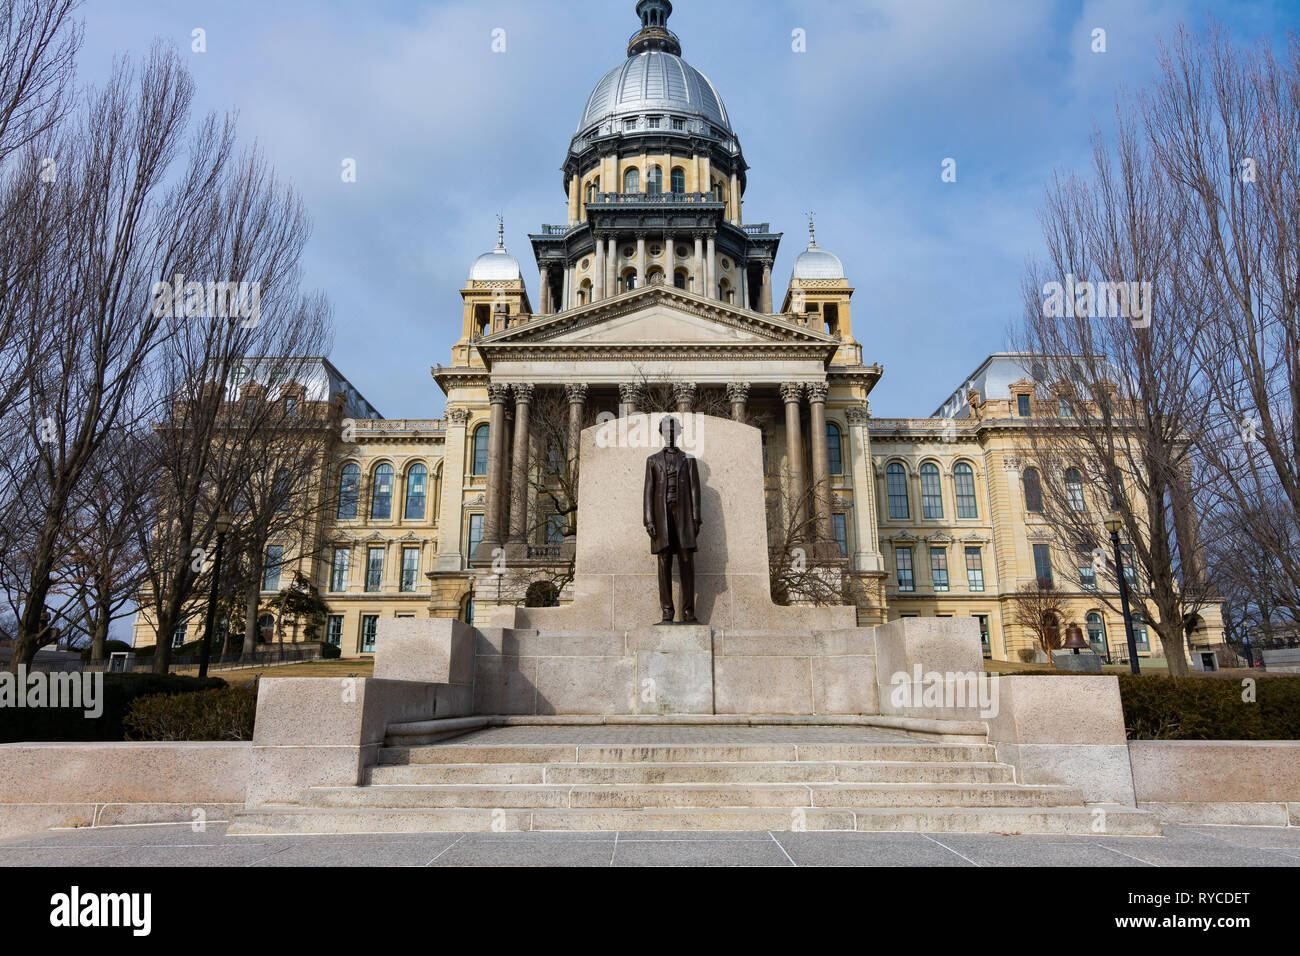 Statue of Abraham Lincoln and State Capitol Building on a Spring morning.  Springfield, Illinois, USA. Stock Photo